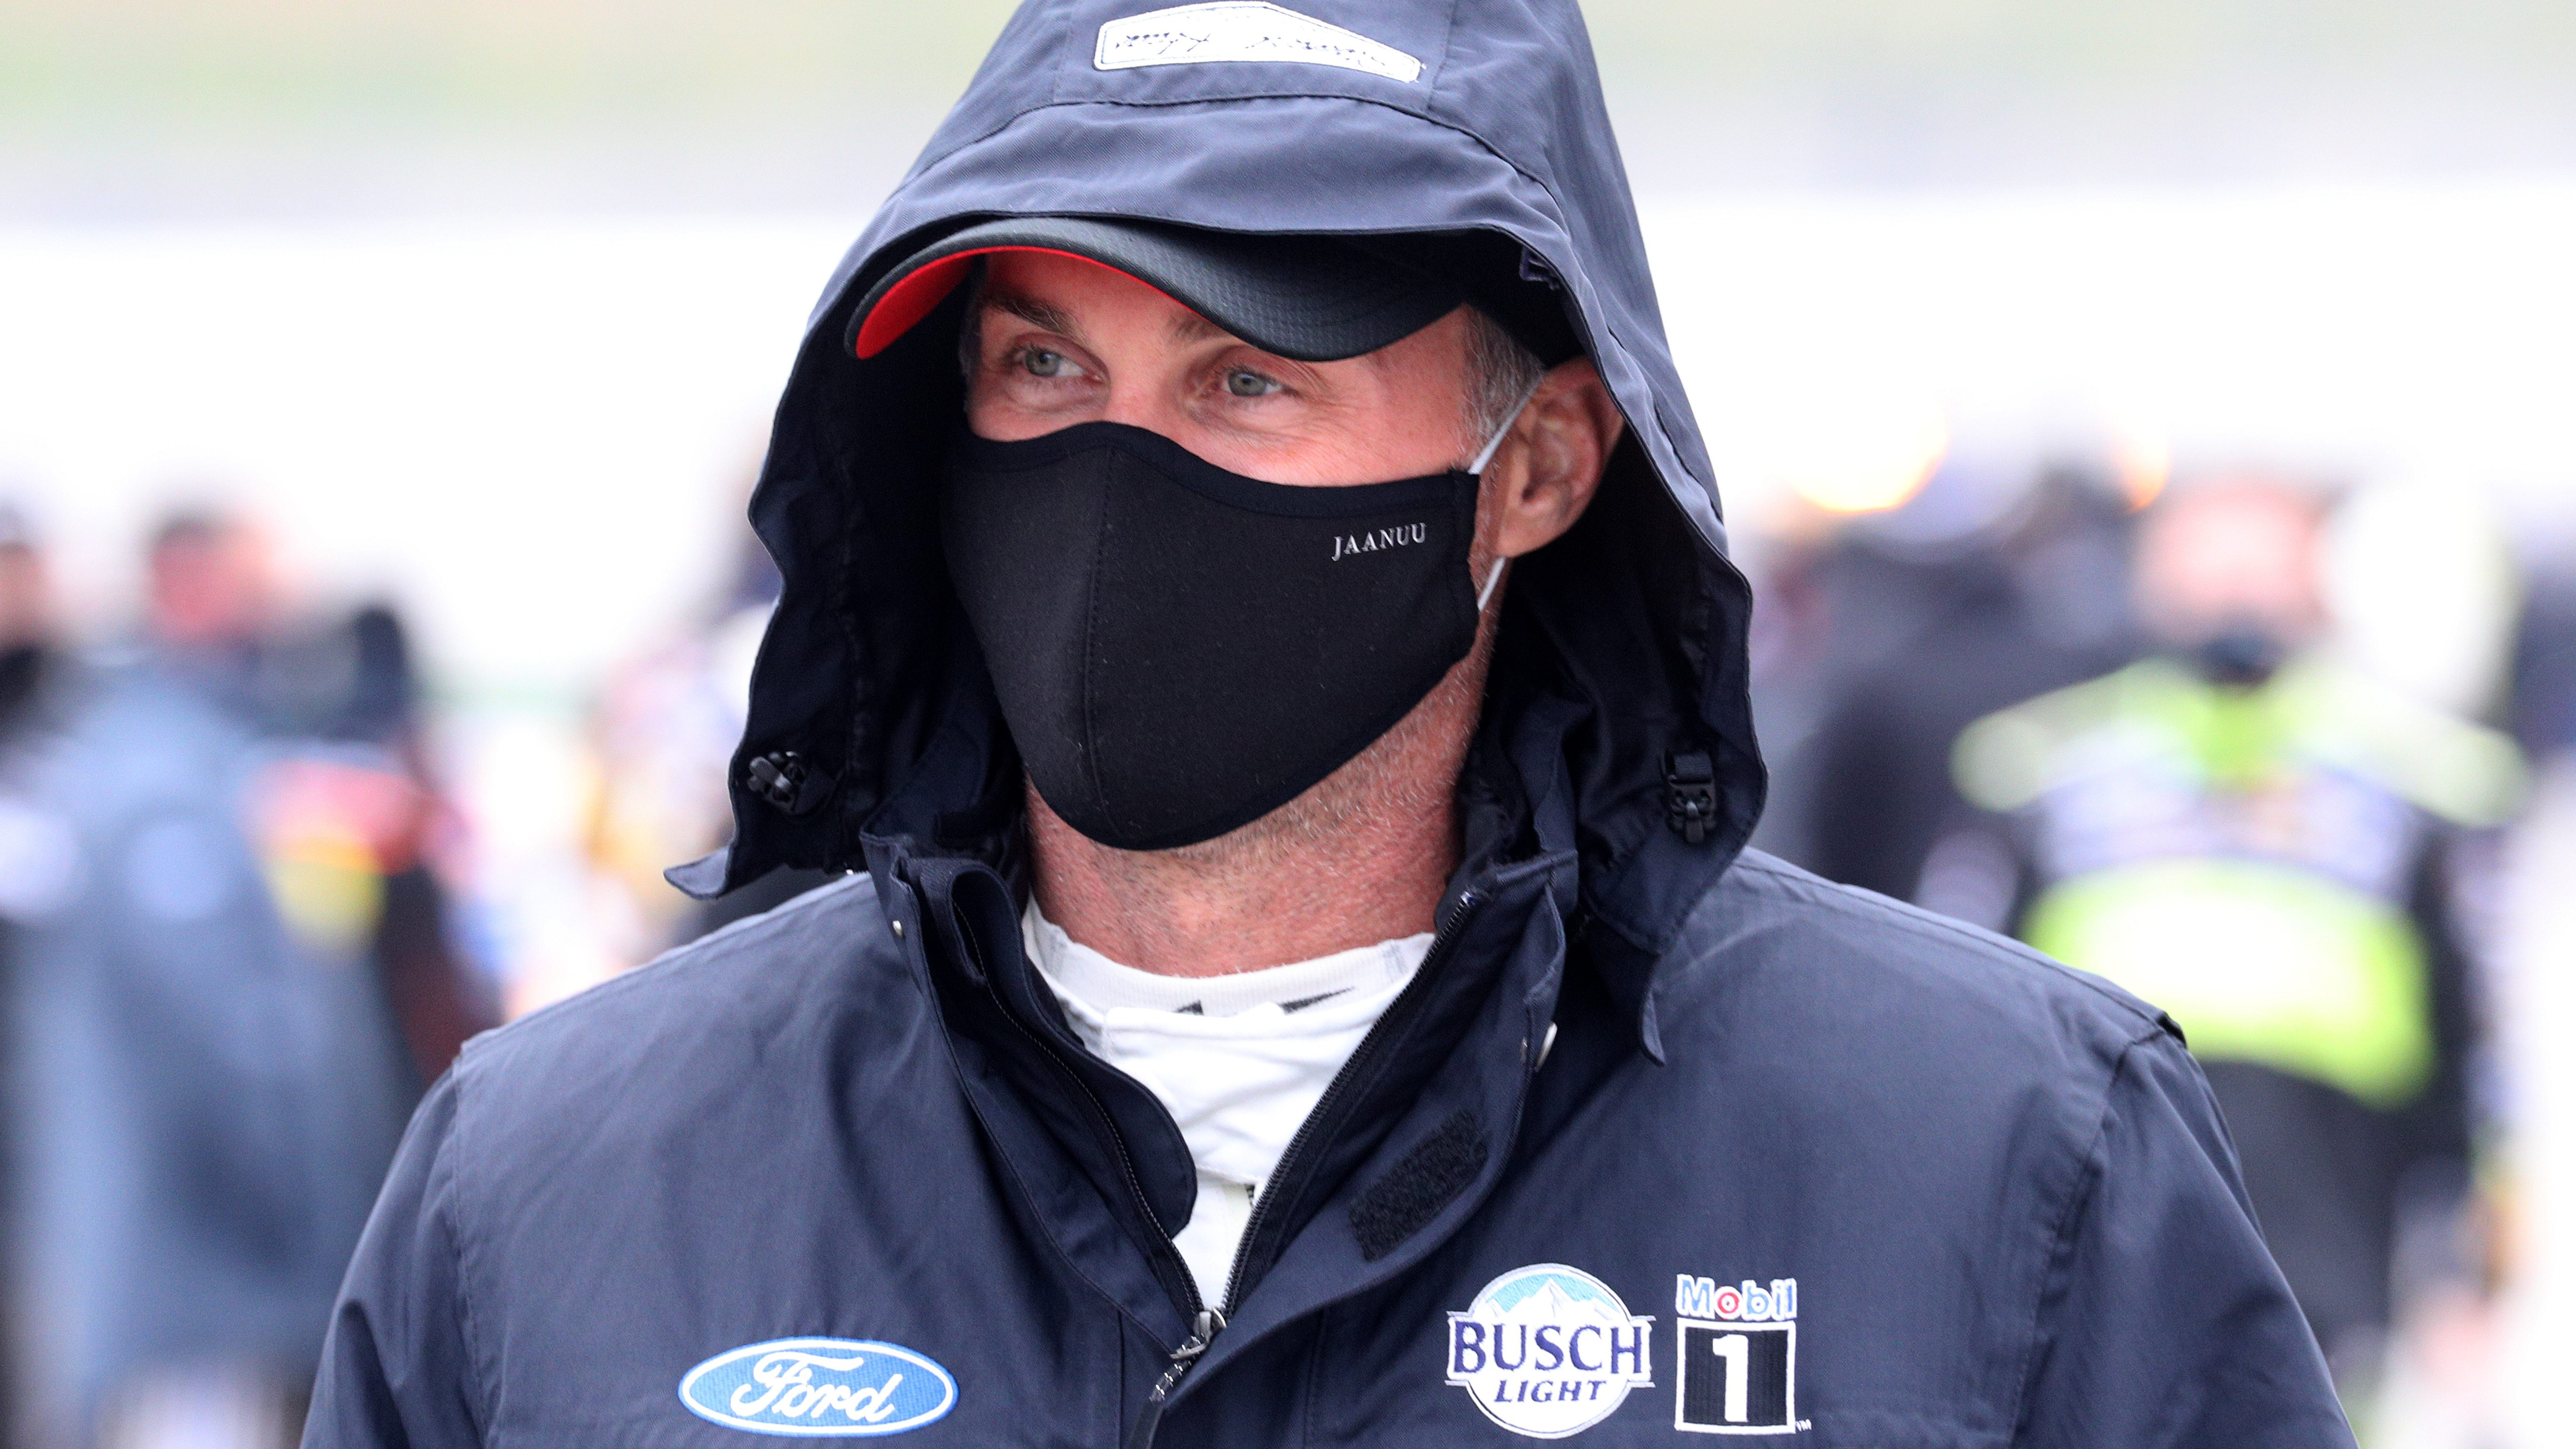 Kevin Harvick will start from the Cup pole position at Texas Motor Speedway